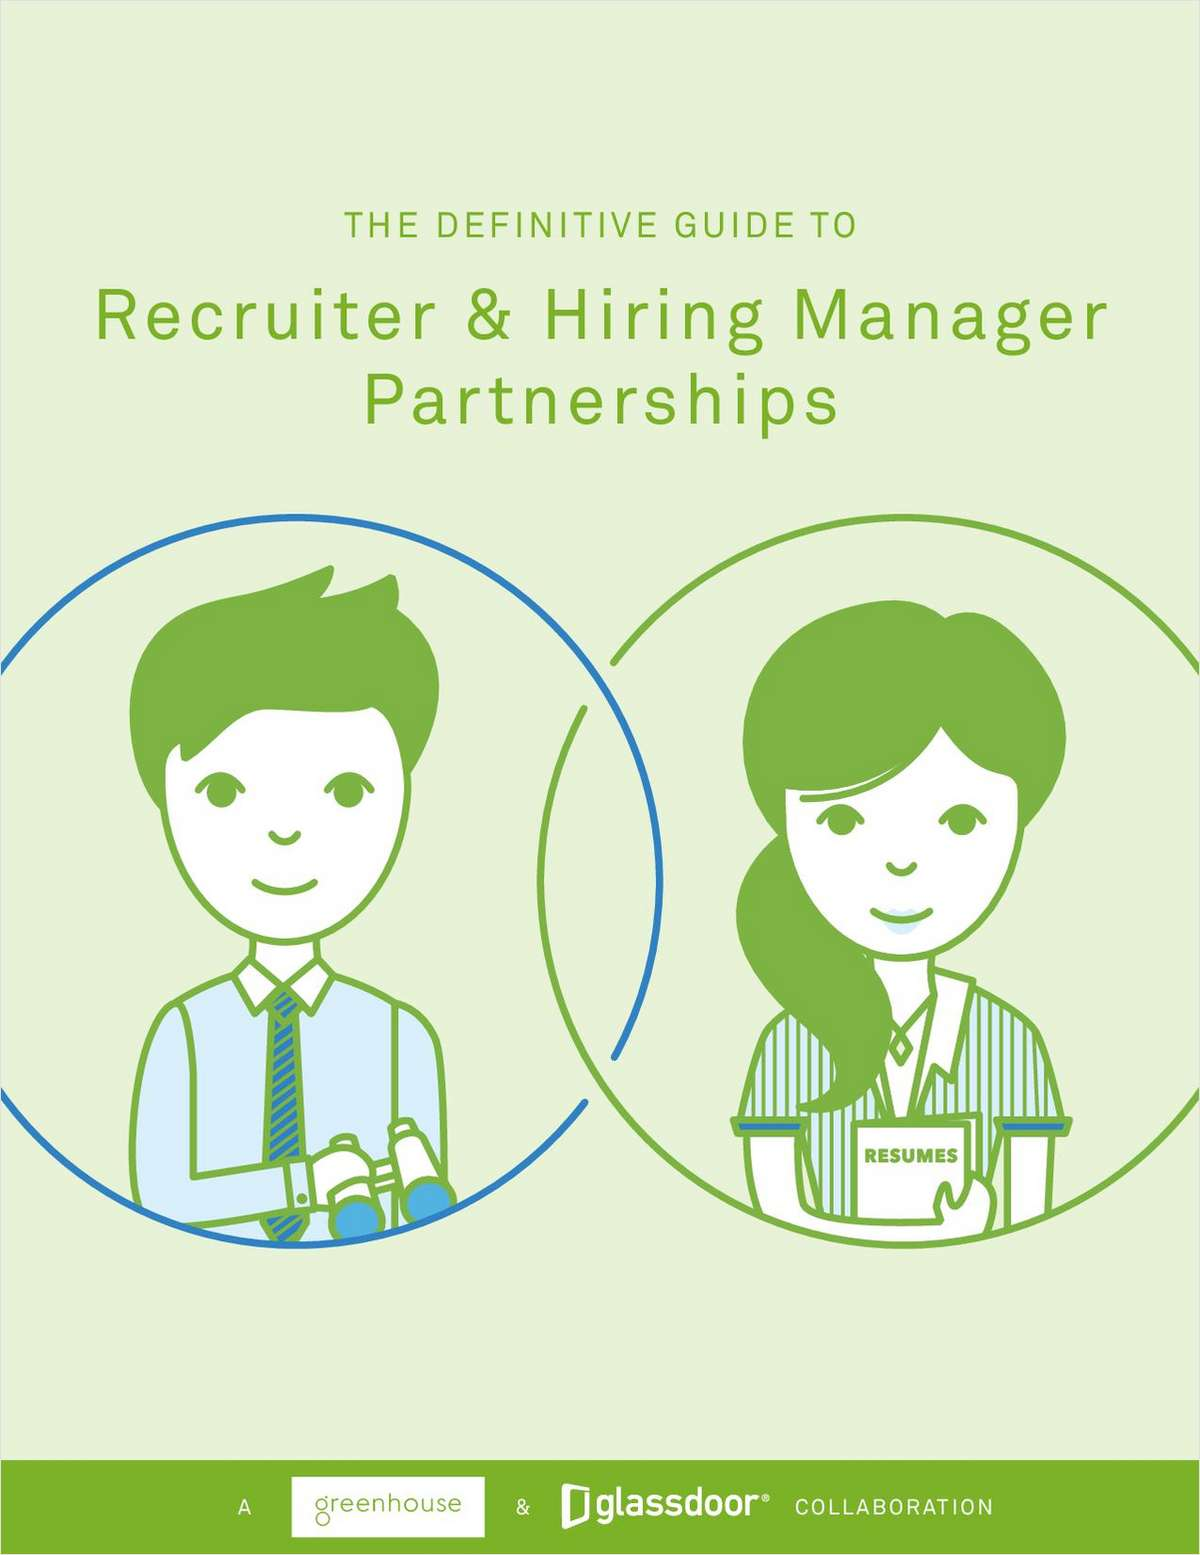 Get the Definitive Guide to Recruiter & Hiring Manager Partnerships